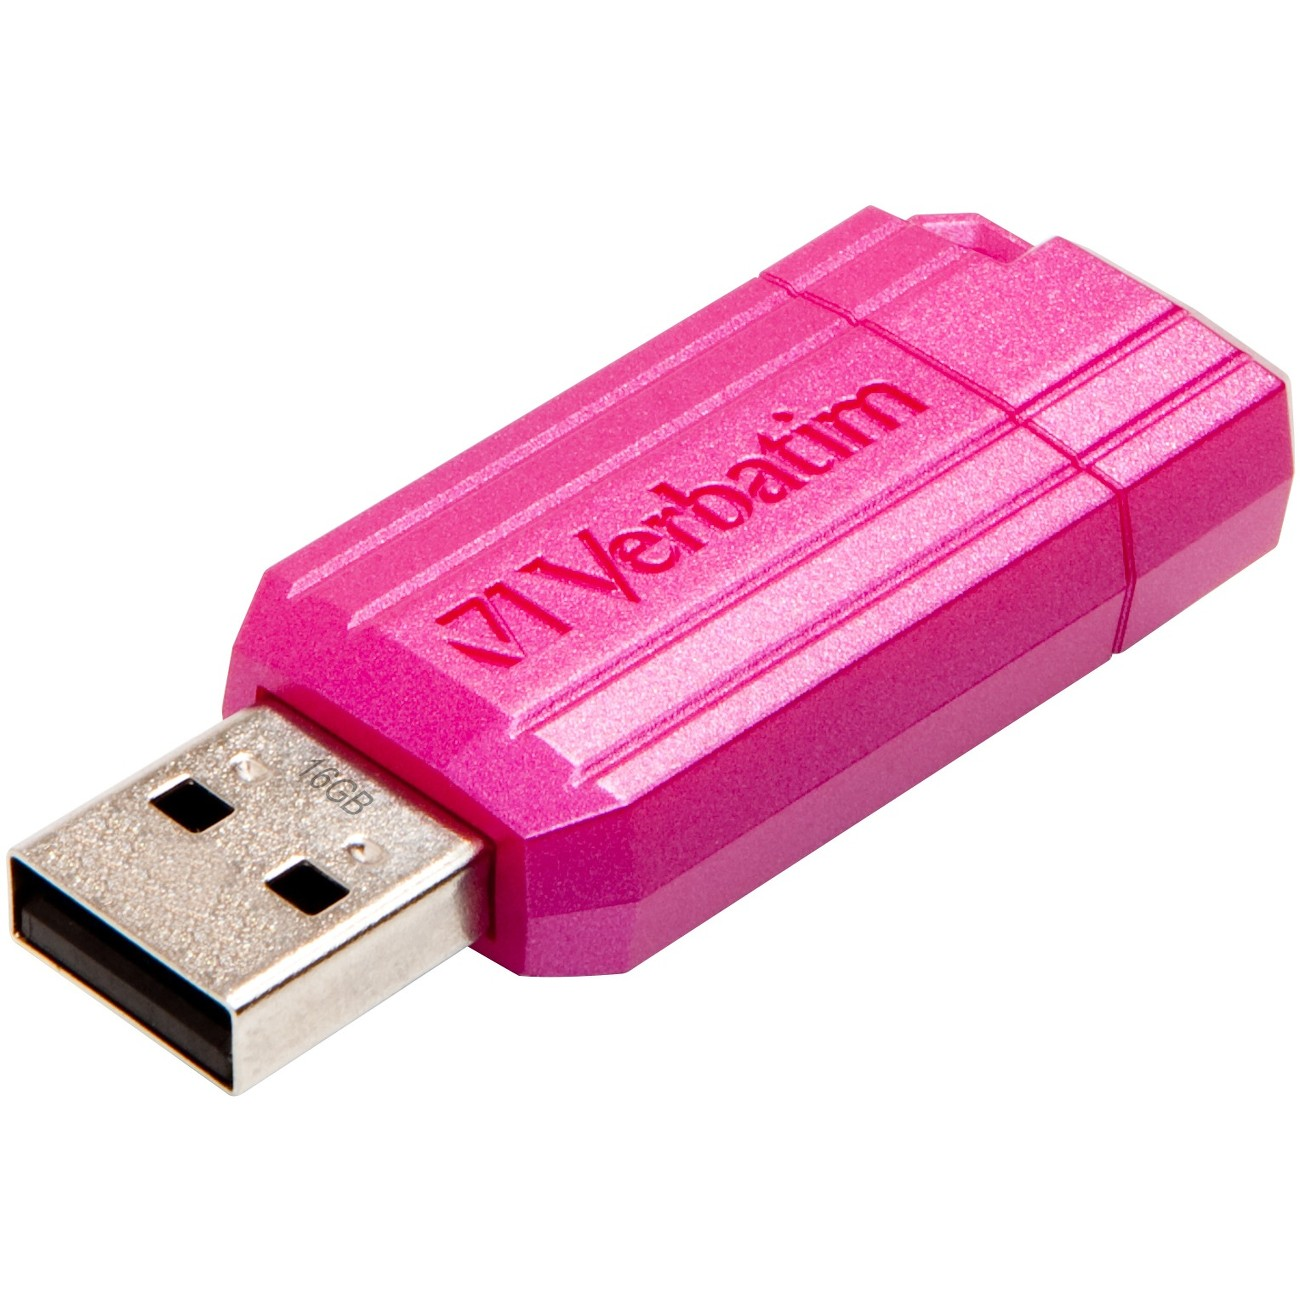 Verbatim 16GB PinStripe USB Flash Drive - Hot Pink (49067)